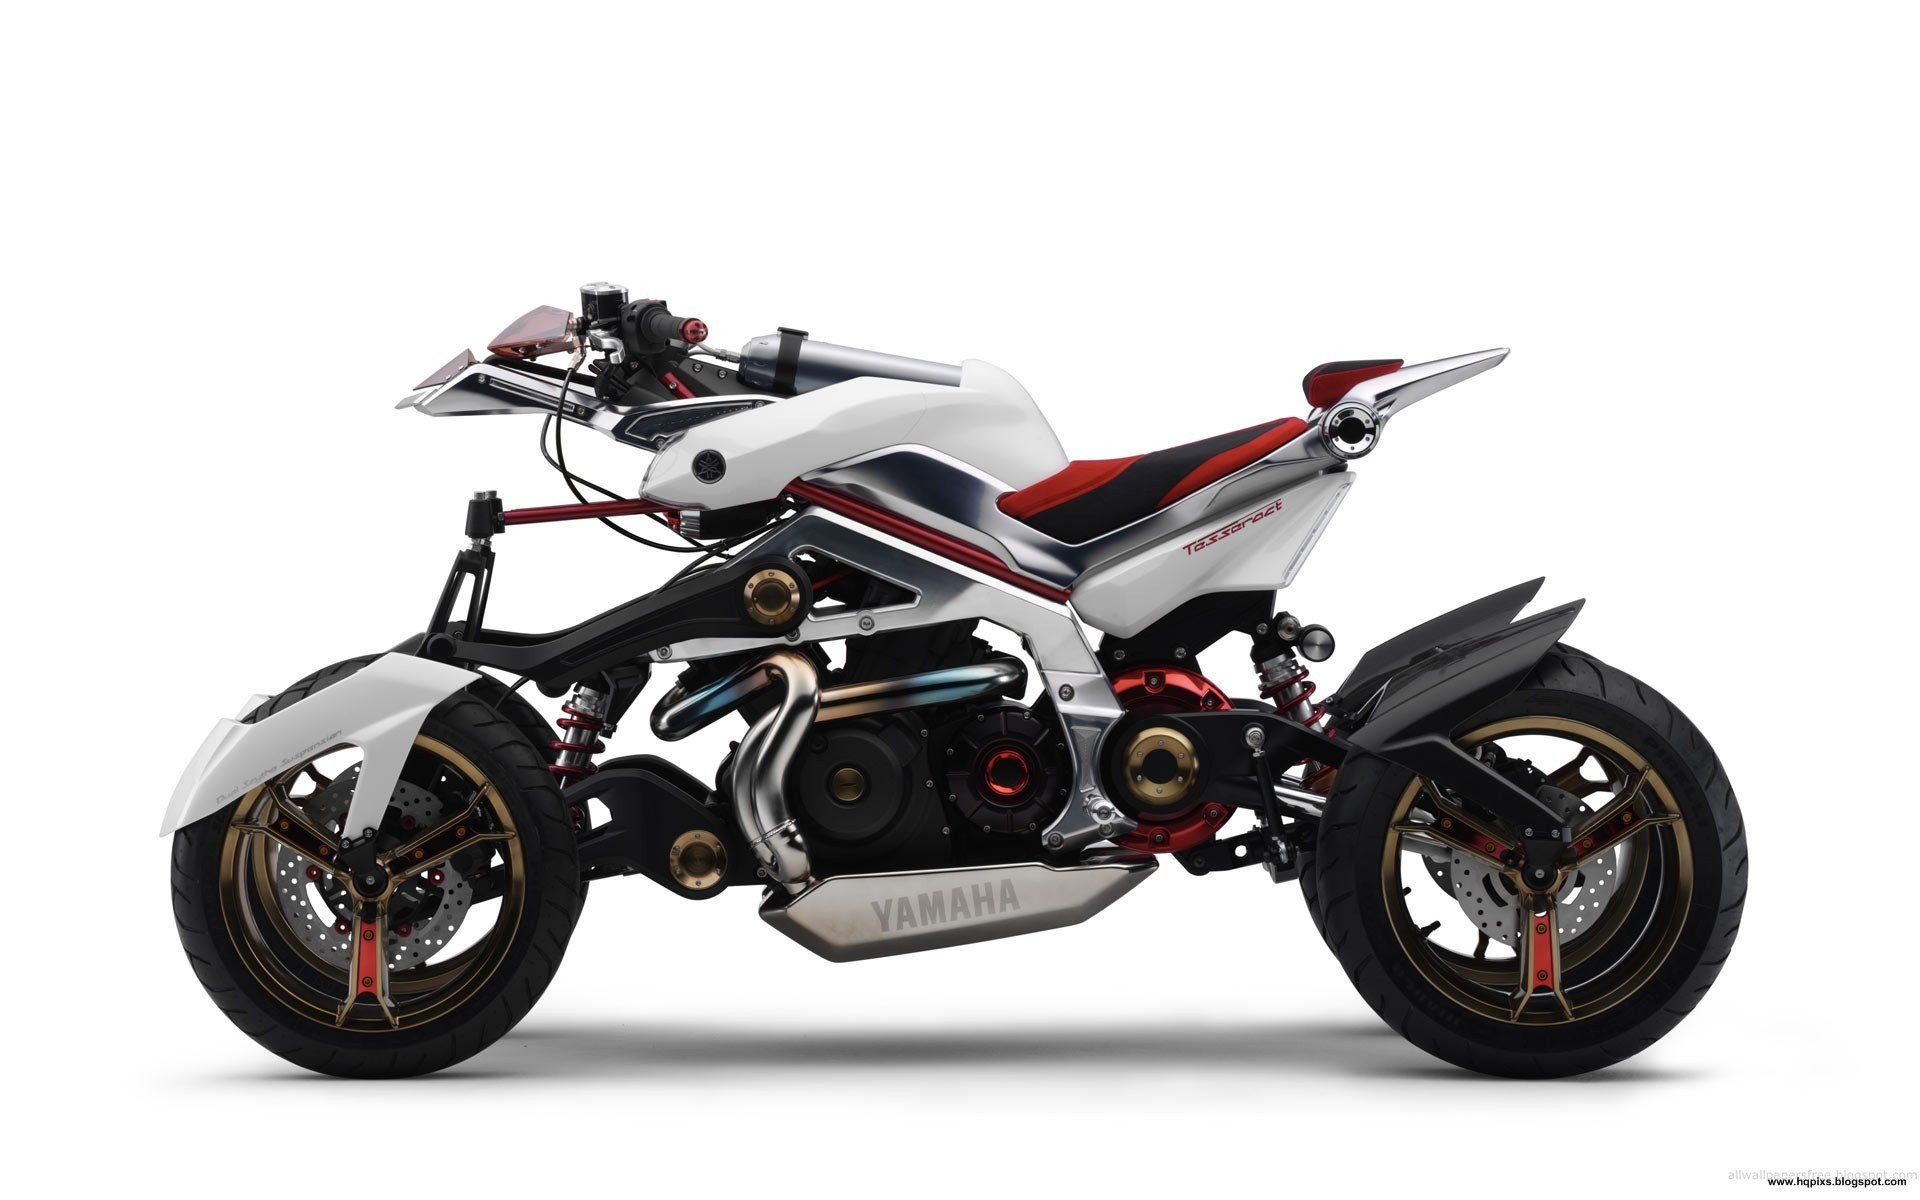 rok bagoros ktm 690 duke stunt bike 3818 hd wallpaper